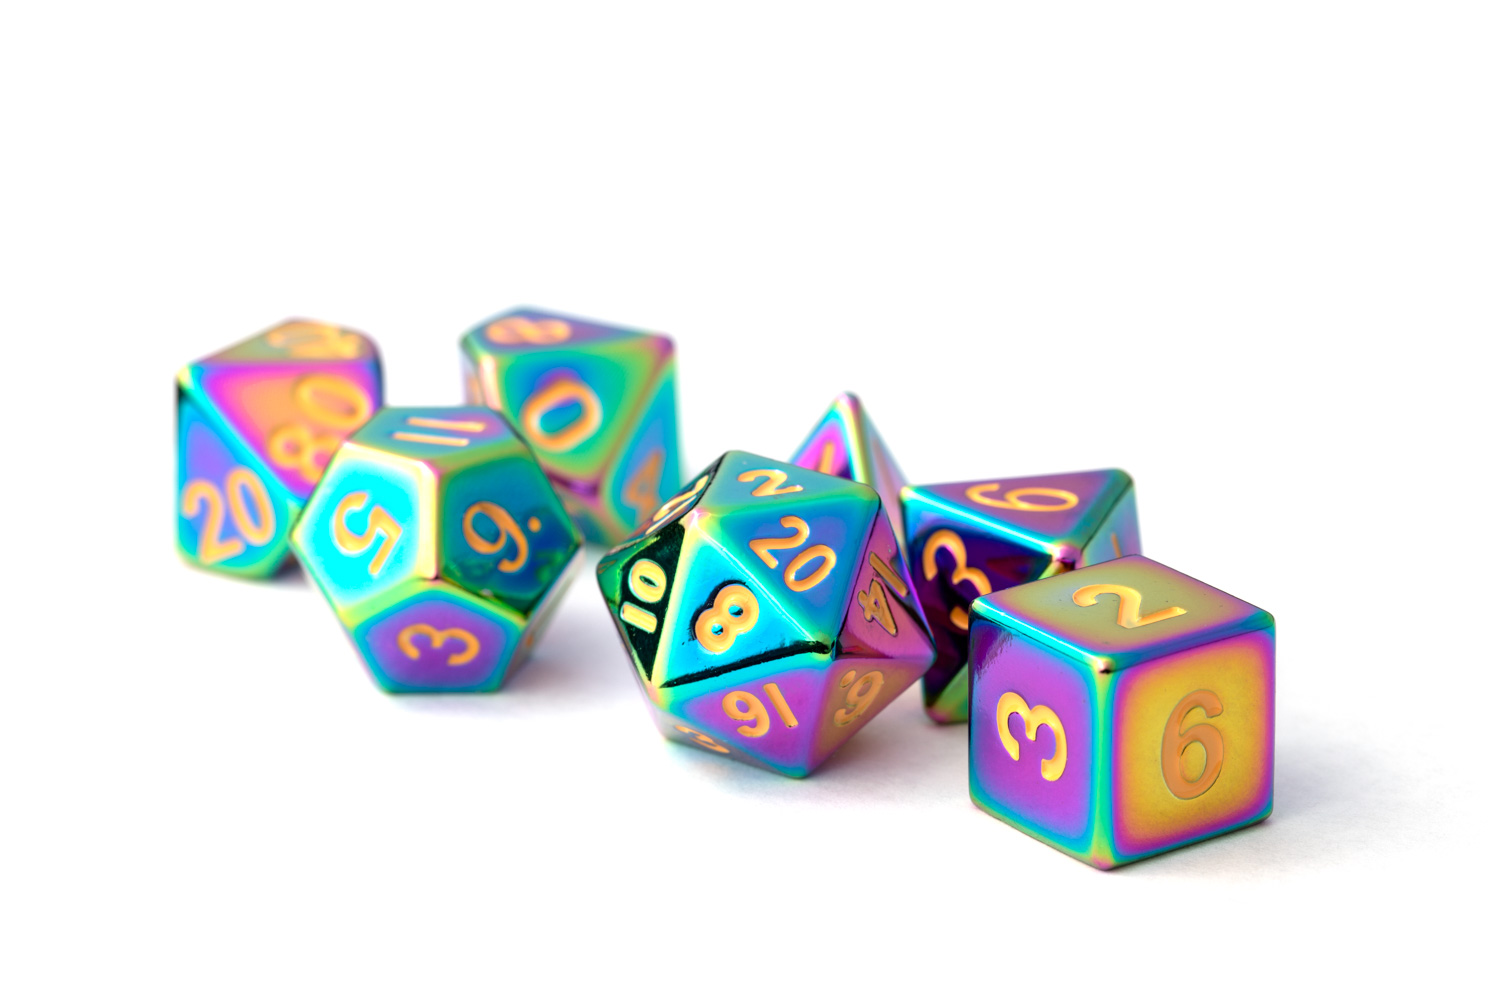 16mm Polyhedral Metal Dice Set - Touched  Rainbow